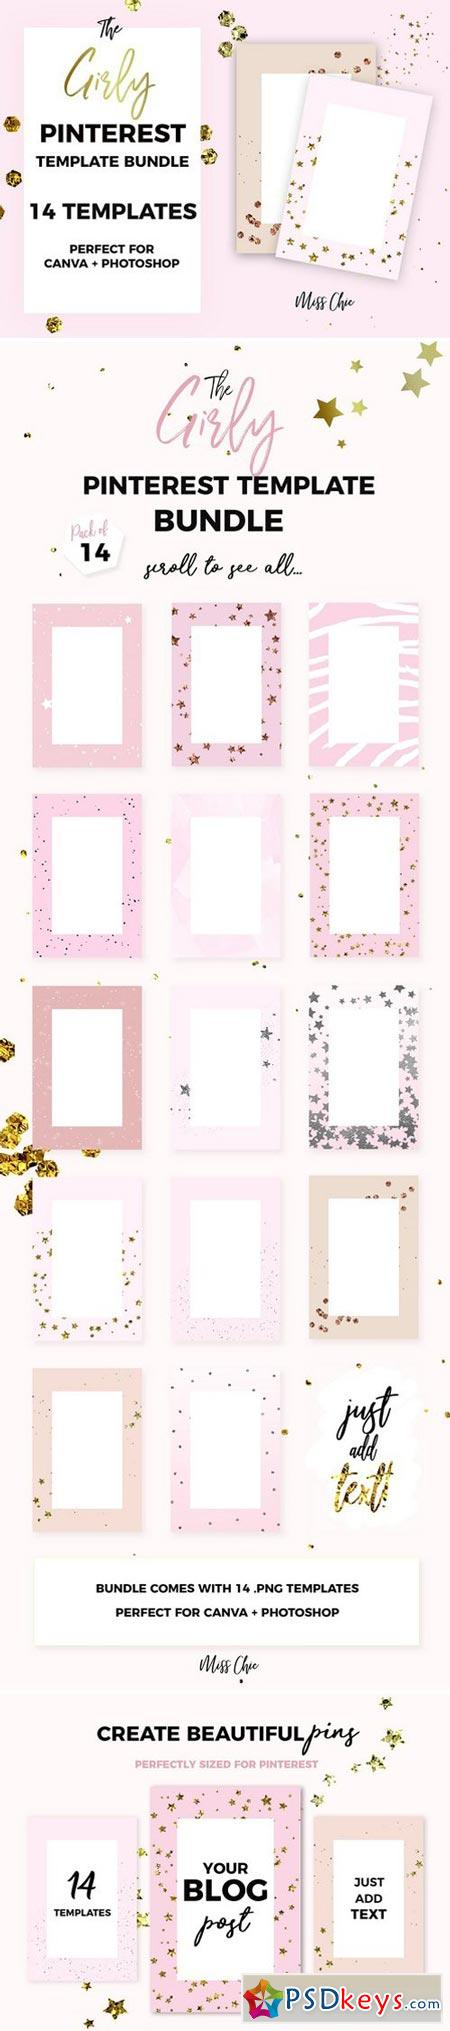 The Girly Pinterest Template Bundle 2007982